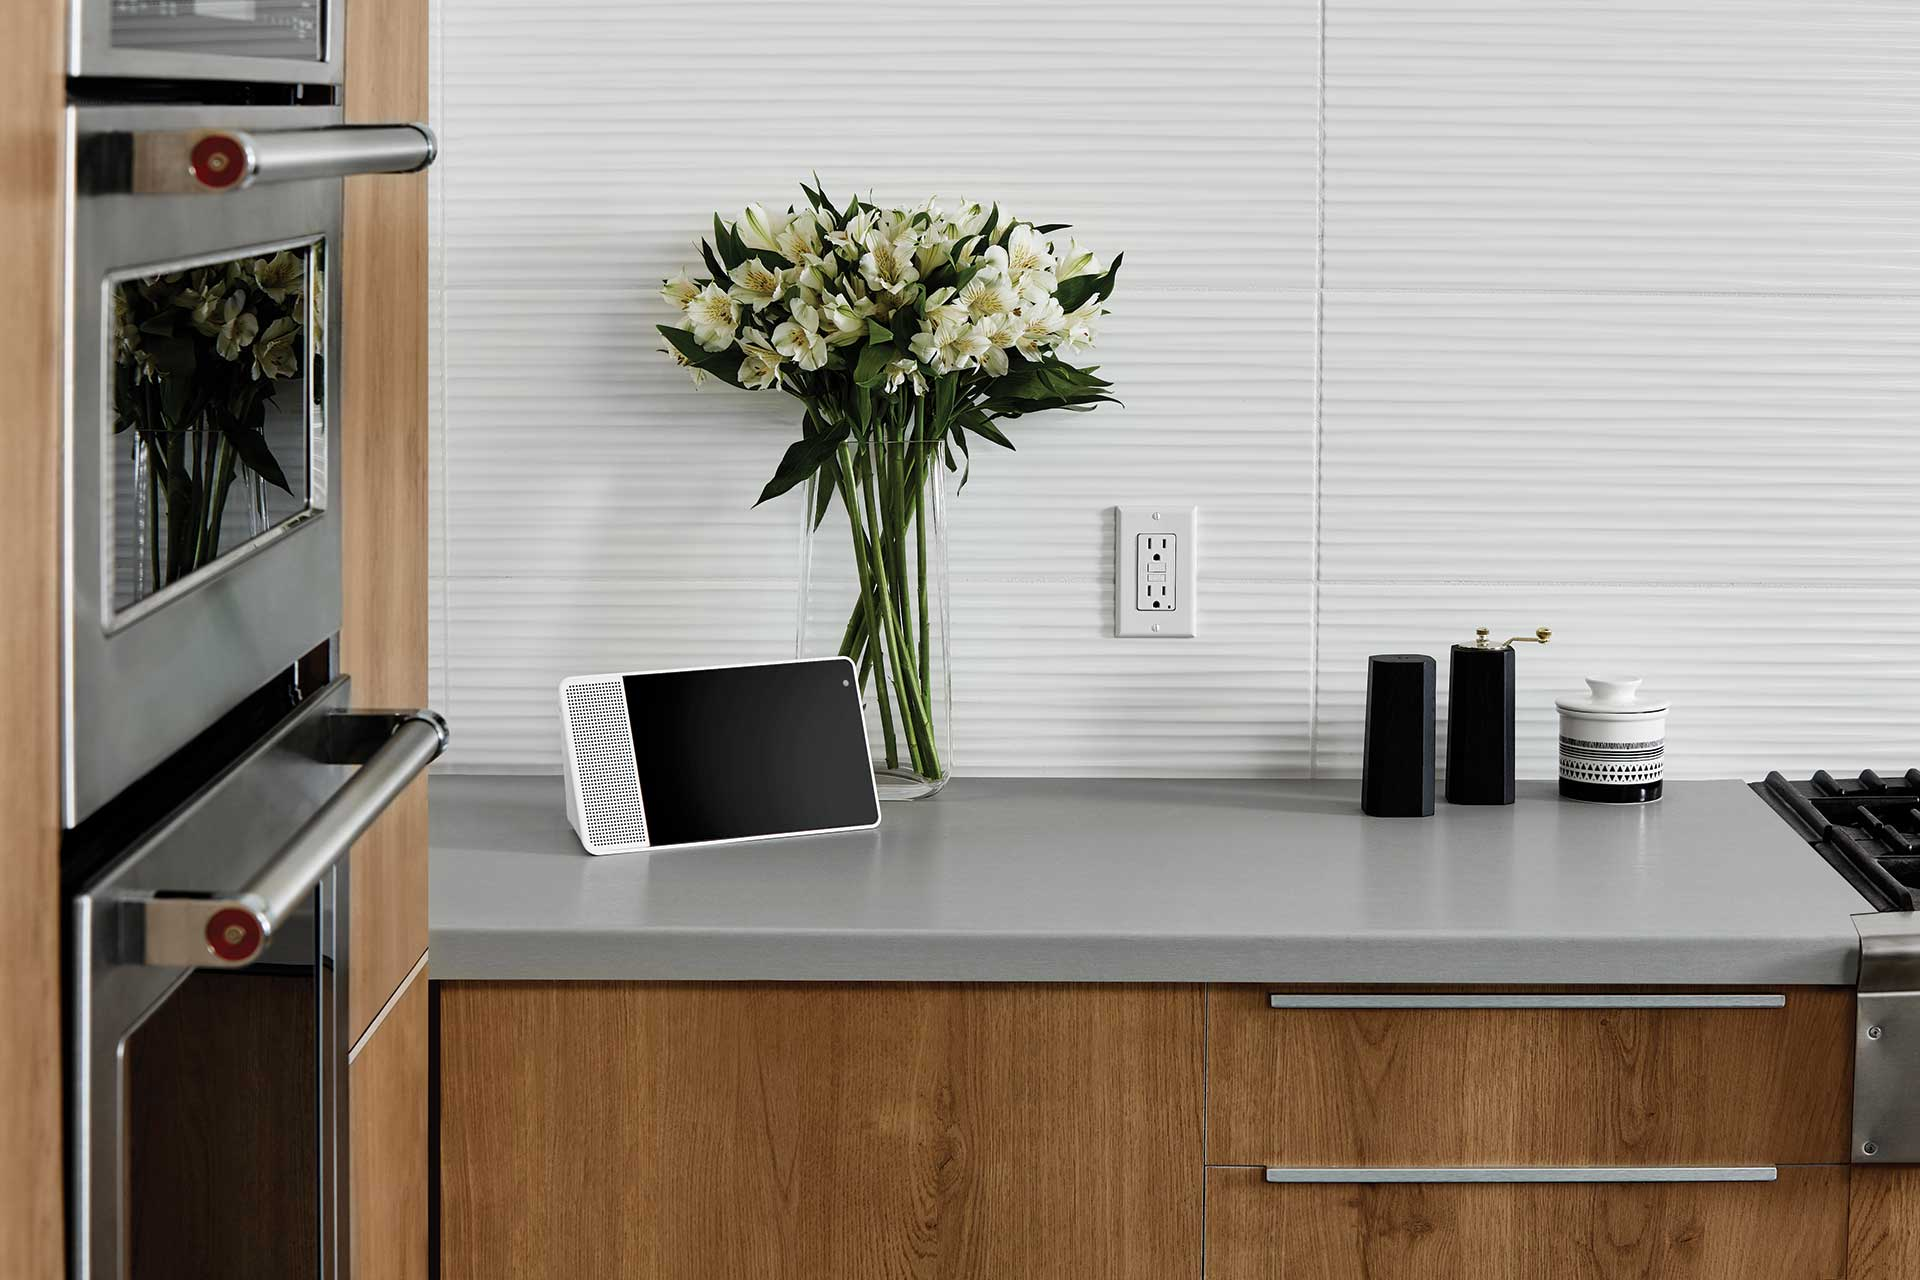 9319-BH-Stainless-kitchen-countertop-9312-NG-Planked-Urban-Oak.jpg